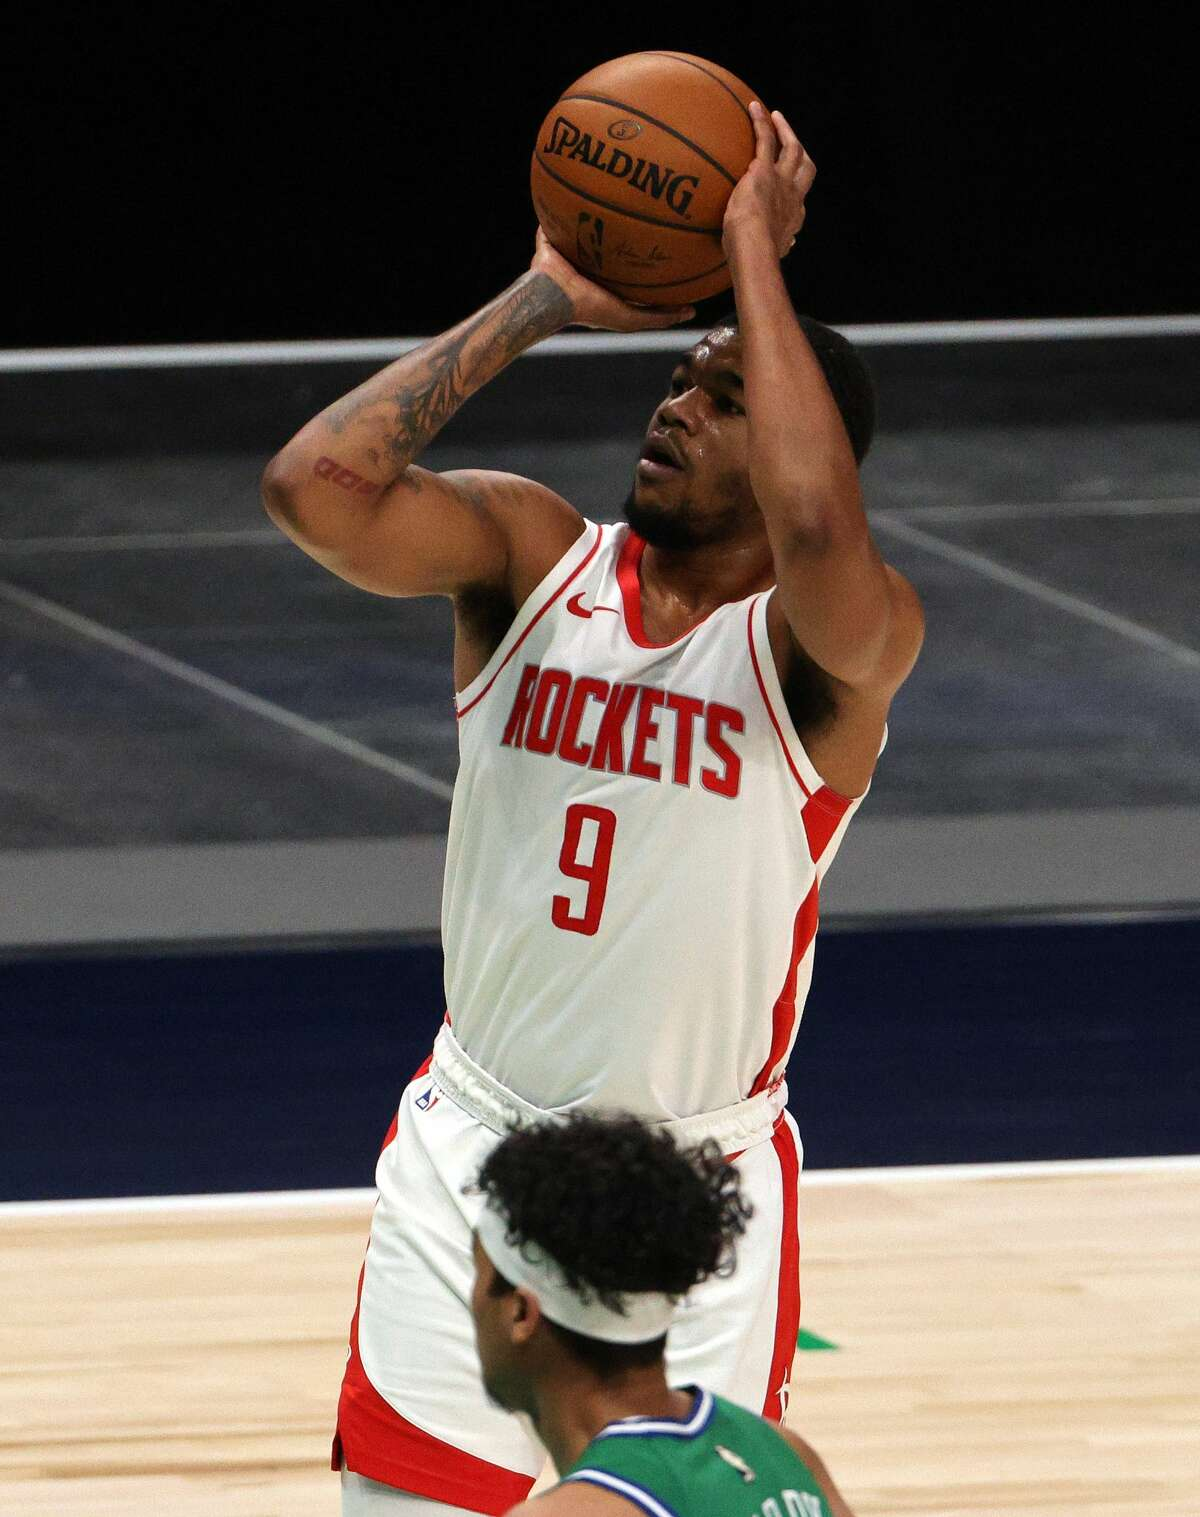 DALLAS, TEXAS - JANUARY 23: Mason Jones #9 of the Houston Rockets takes a shot against the Dallas Mavericks in the fourth quarter at American Airlines Center on January 23, 2021 in Dallas, Texas. NOTE TO USER: User expressly acknowledges and agrees that, by downloading and/or using this Photograph, User is consenting to the terms and conditions of the Getty Images License Agreement. (Photo by Ronald Martinez/Getty Images)